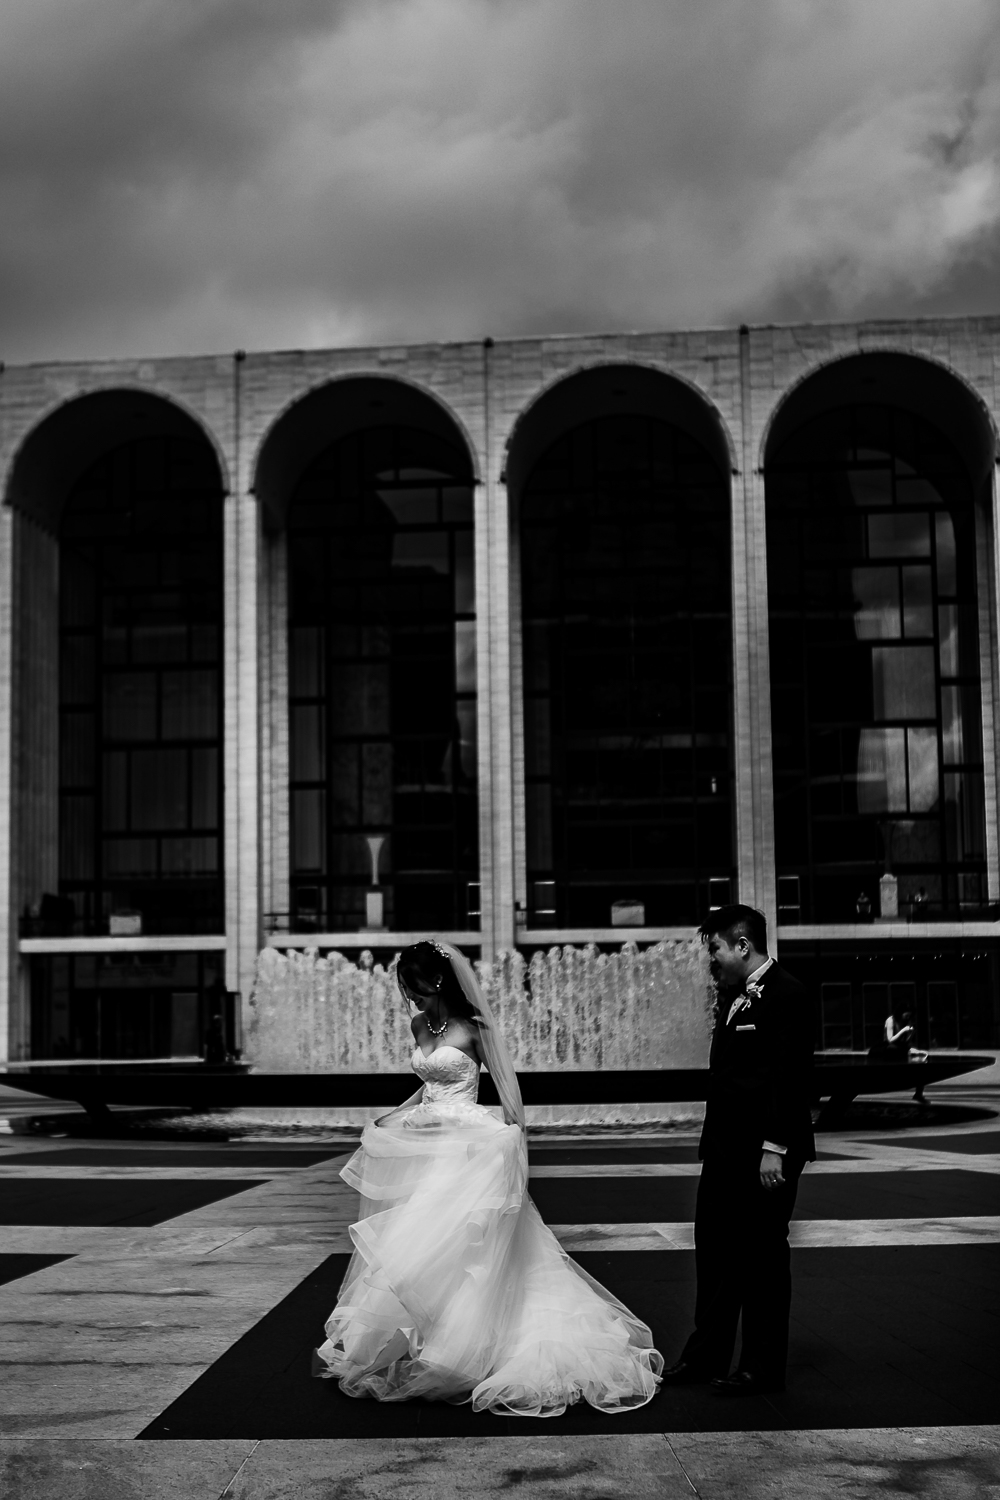 Black and white portrait of a couple posing for wedding portraits at Lincoln Center in New York City | Lincoln Center Wedding Photos | Jason and Susanna's Glam NYC Elopement